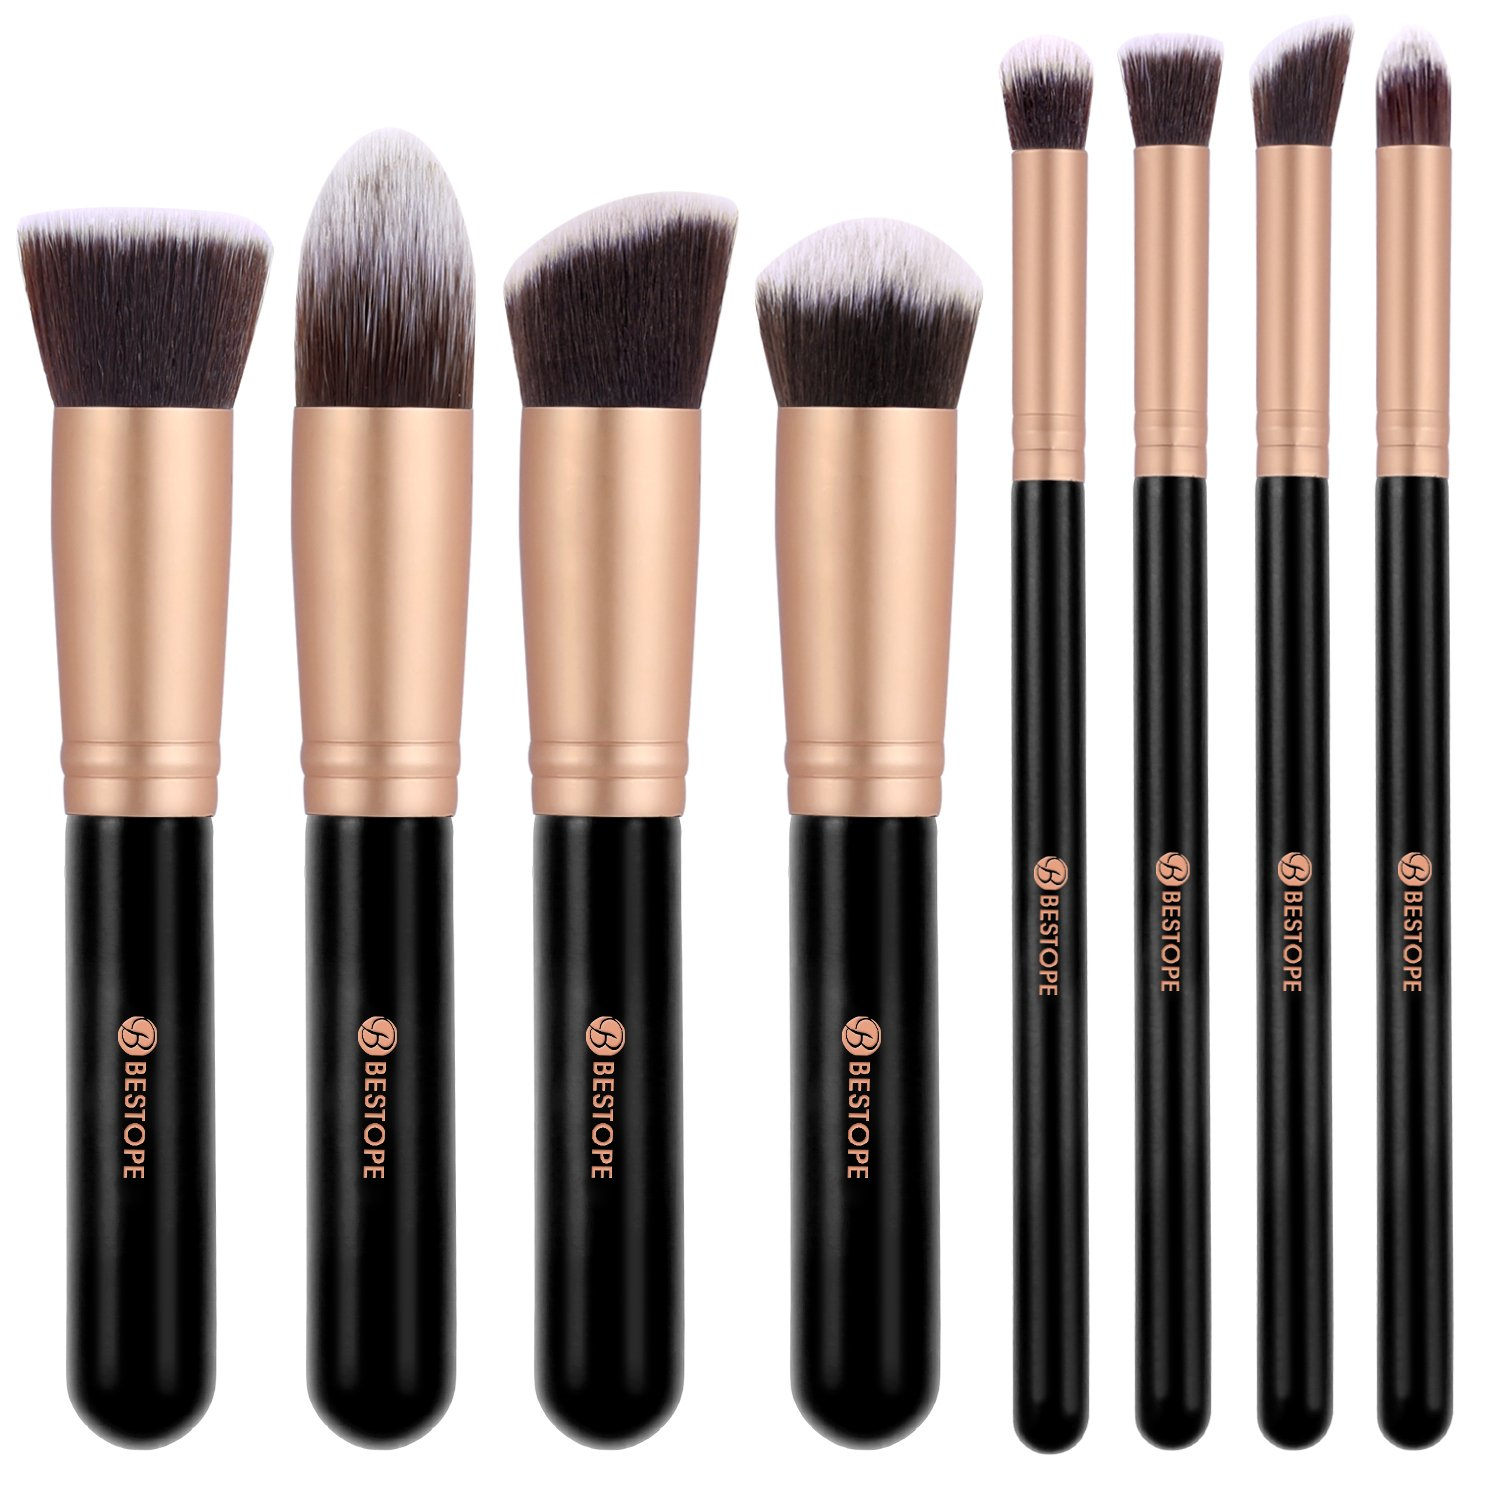 BESTOPE Makeup Brushes Premium Cosmetics Brush Set (Updated Version)Synthetic Kabuki Makeup Brush, Foundation, Blending Blush, Eyeliner, Face Powder Brush Kit(8PCs, Rose Gold)